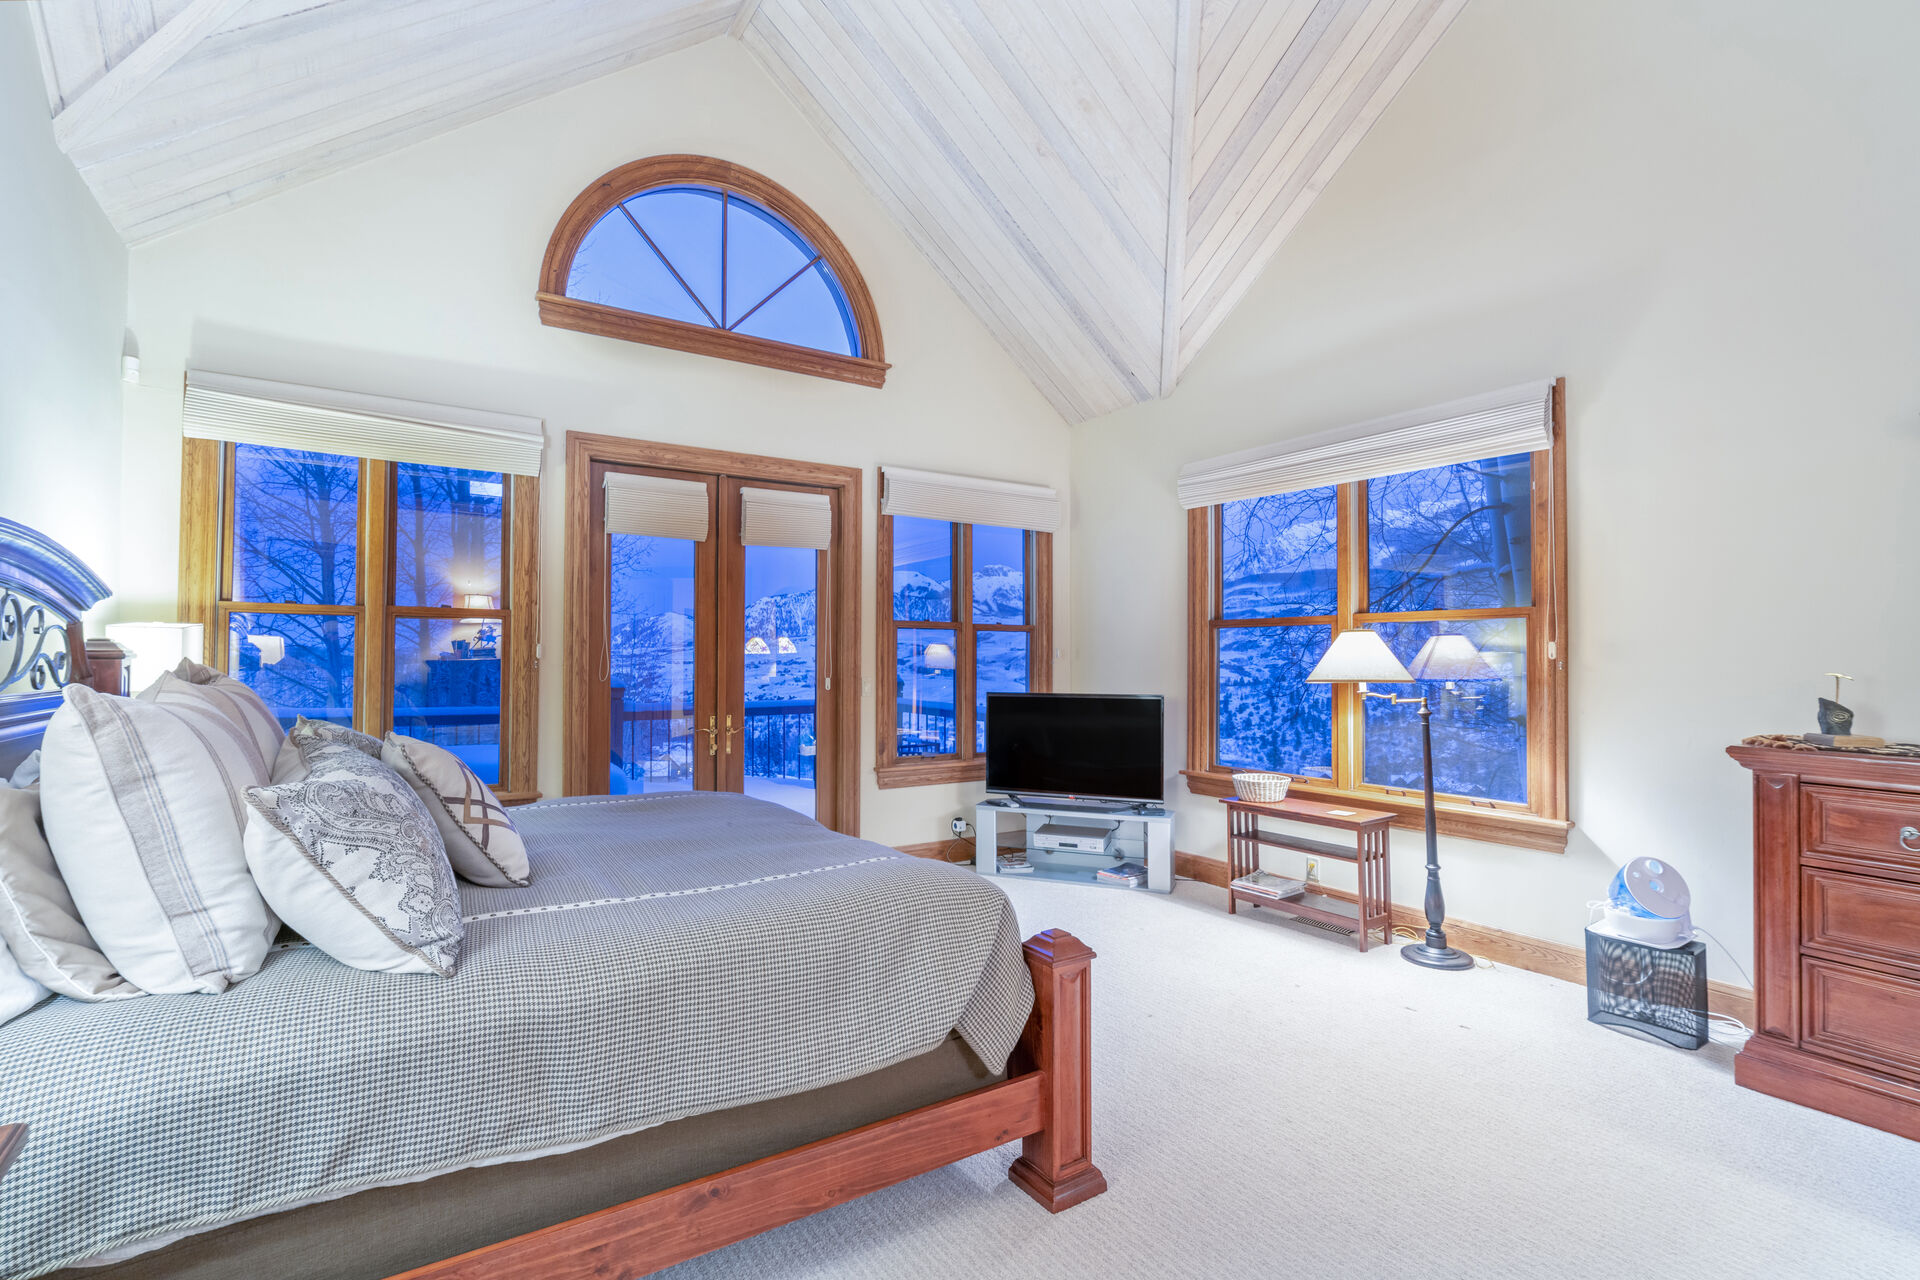 Master bedroom with ample floor space, flat-screen TV, and large bed, all surrounded by large windows.